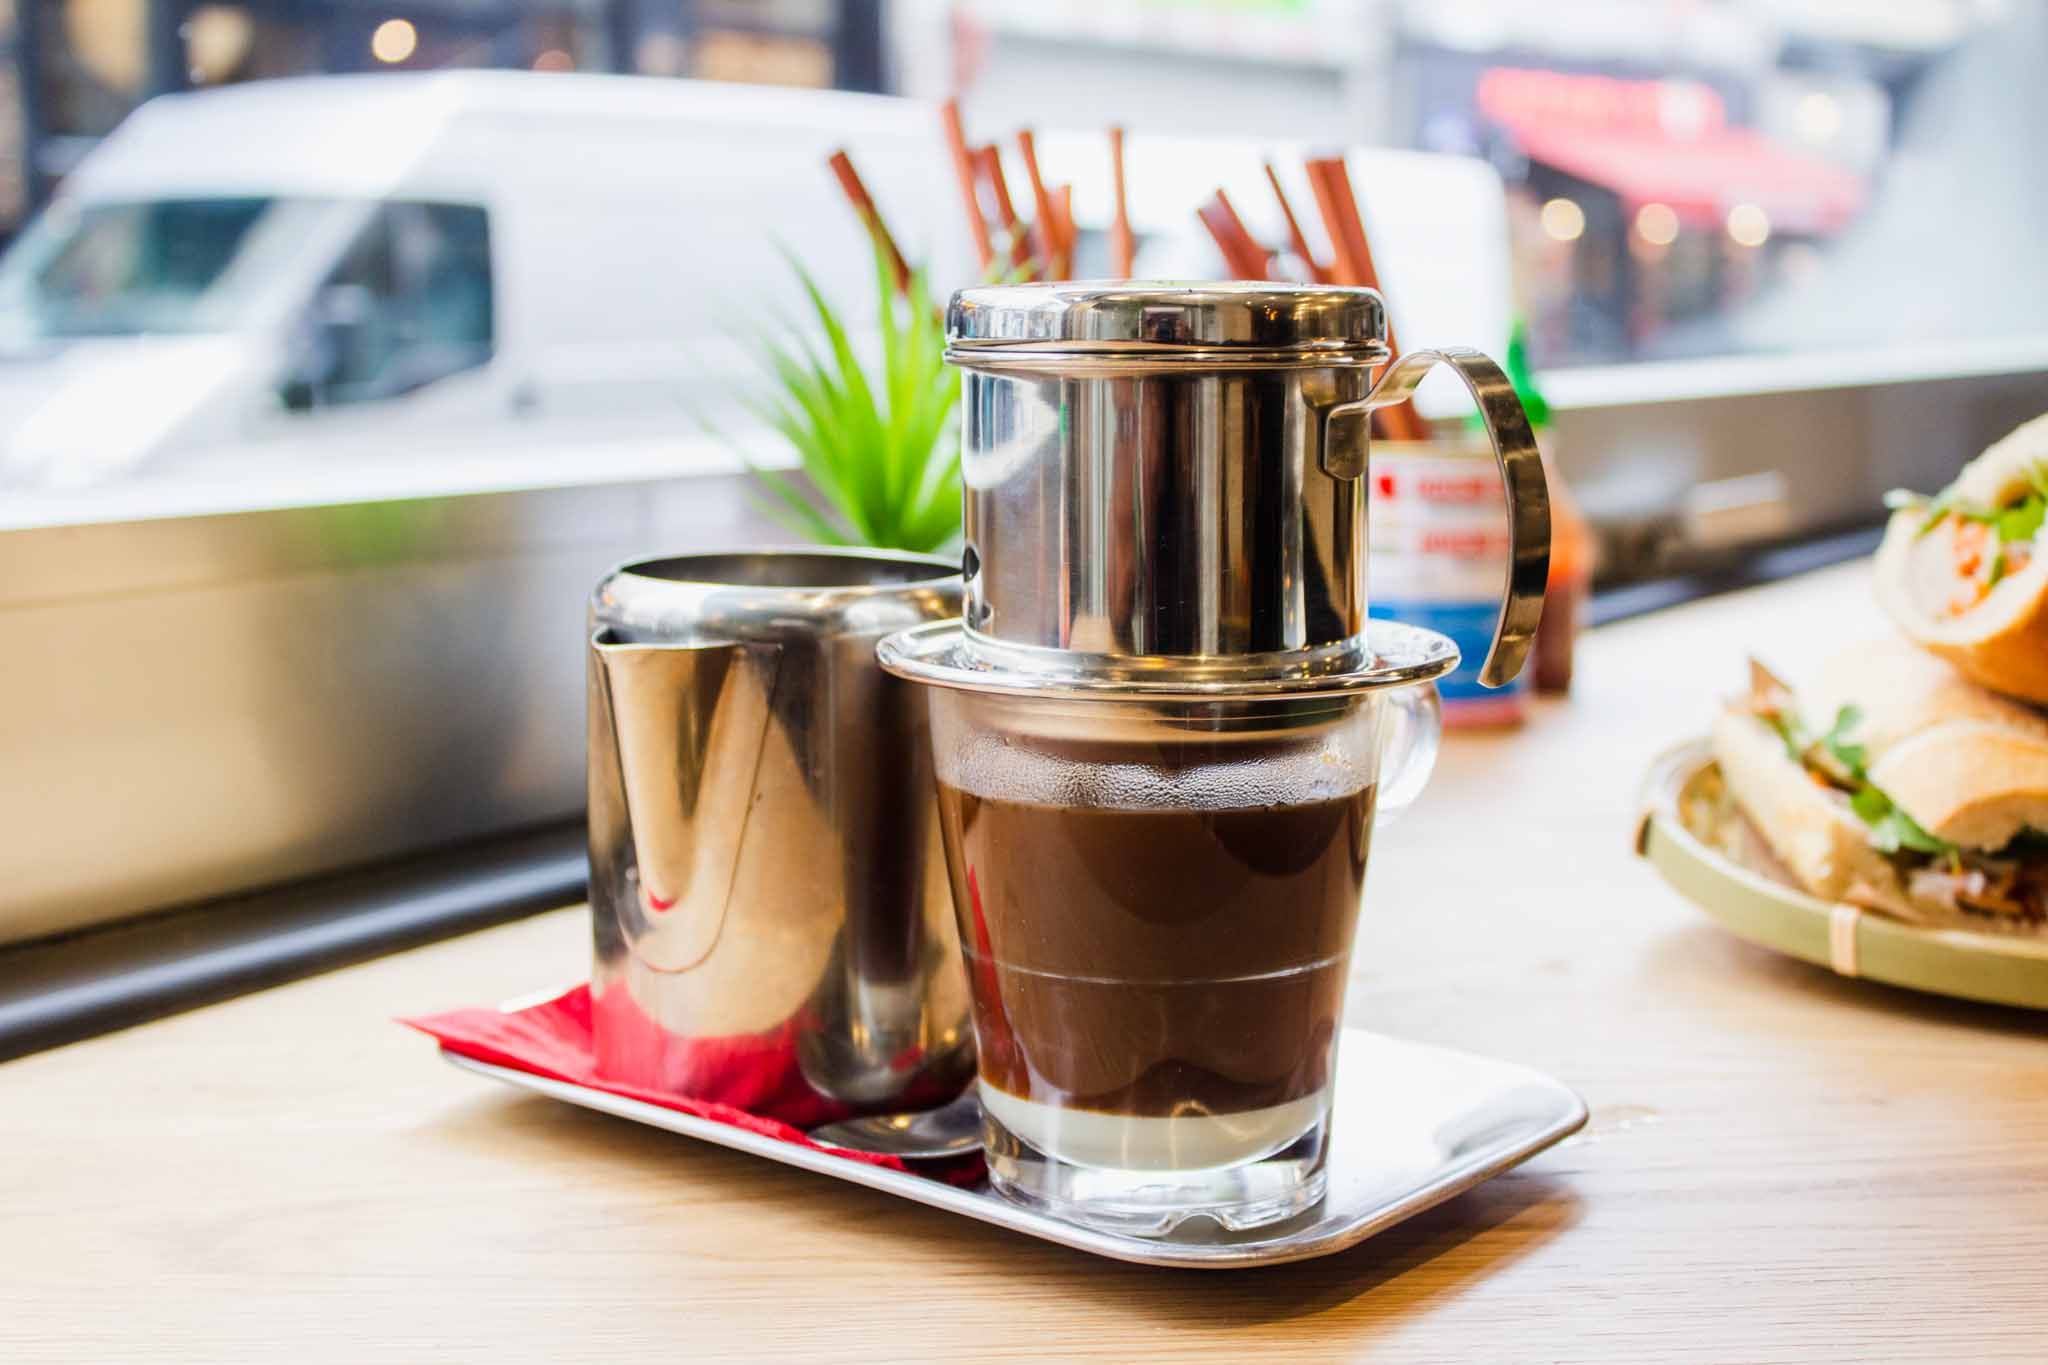 Vietnamese coffee and food on the table in a Vietnamese restaurant